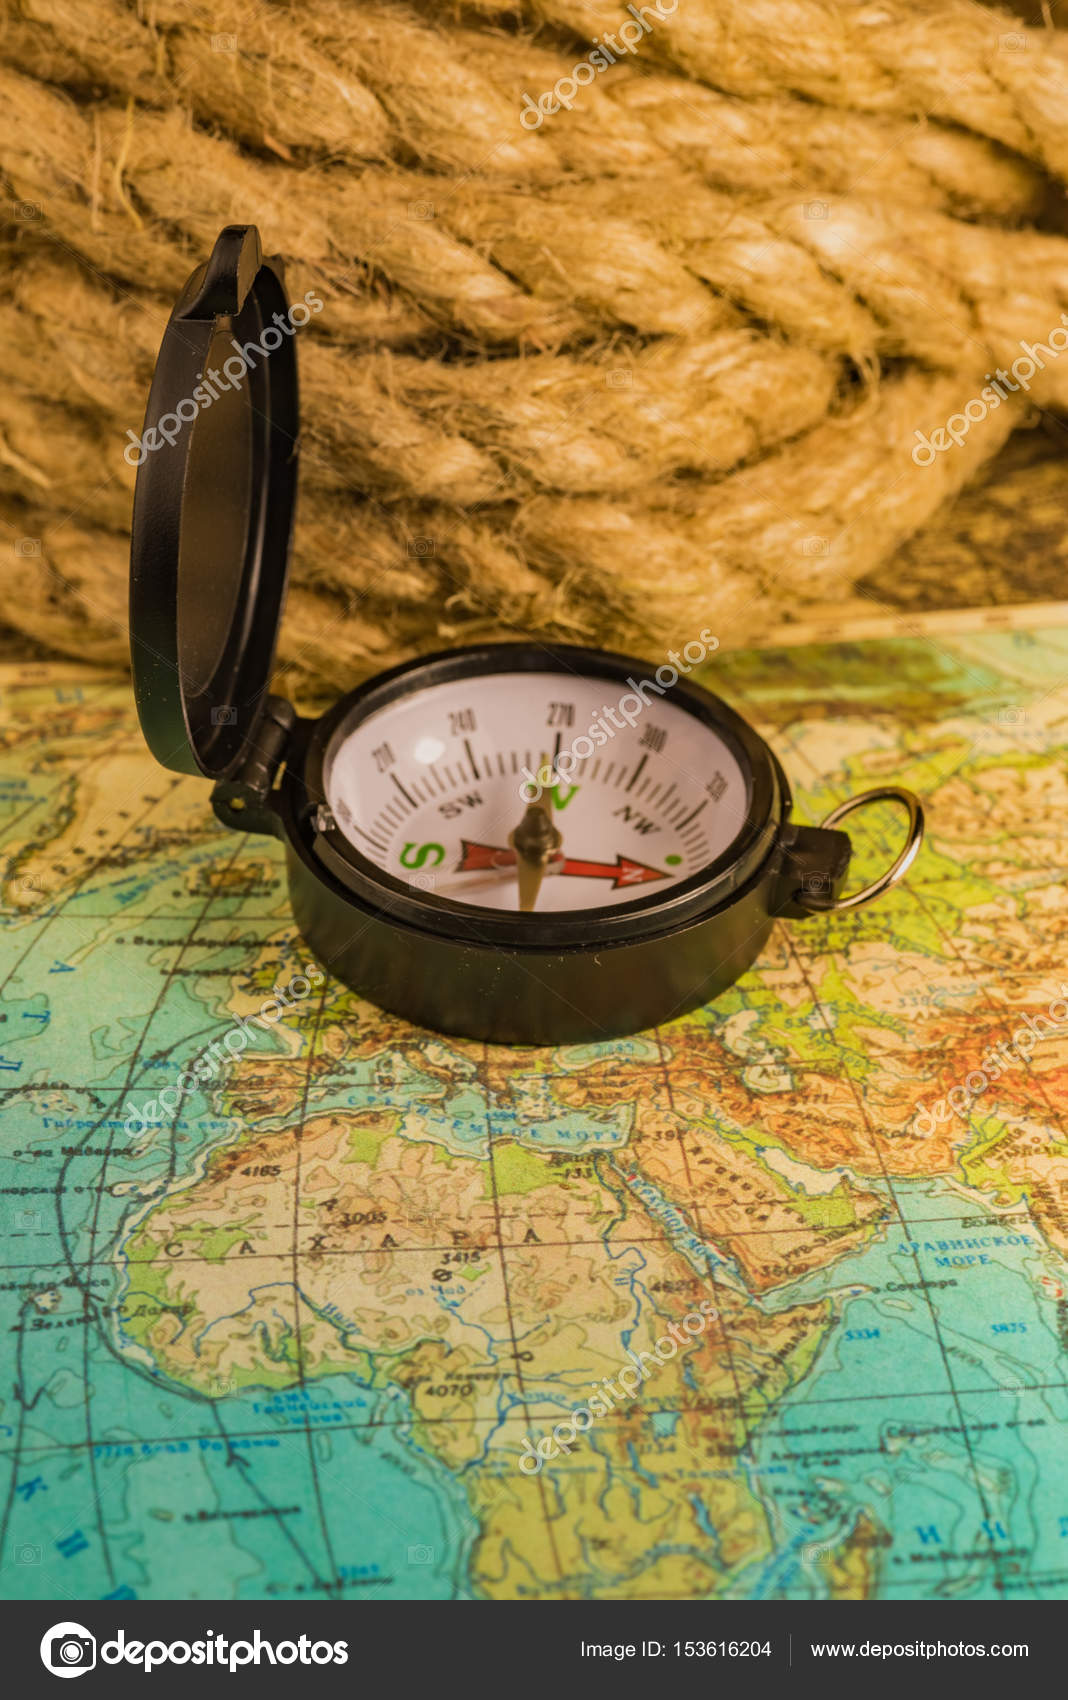 Compass on the world map stock photo db rus 153616204 compass lies on an ancient world map photo by db rus gumiabroncs Gallery